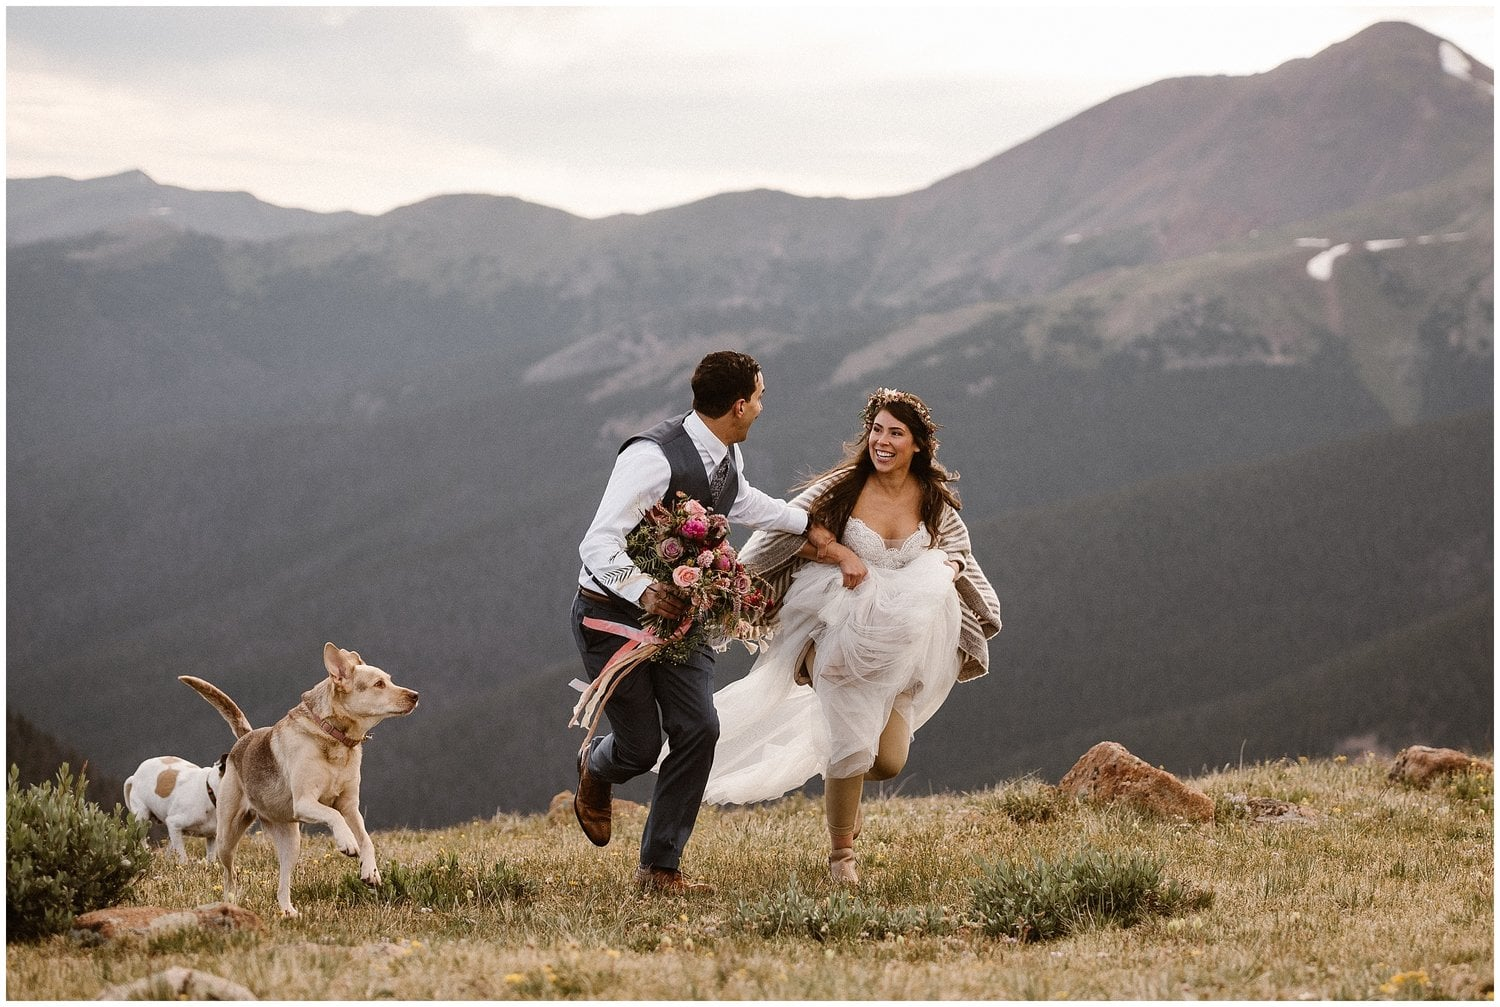 Bride and groom run up a mountain while their two dogs run with them by their side.